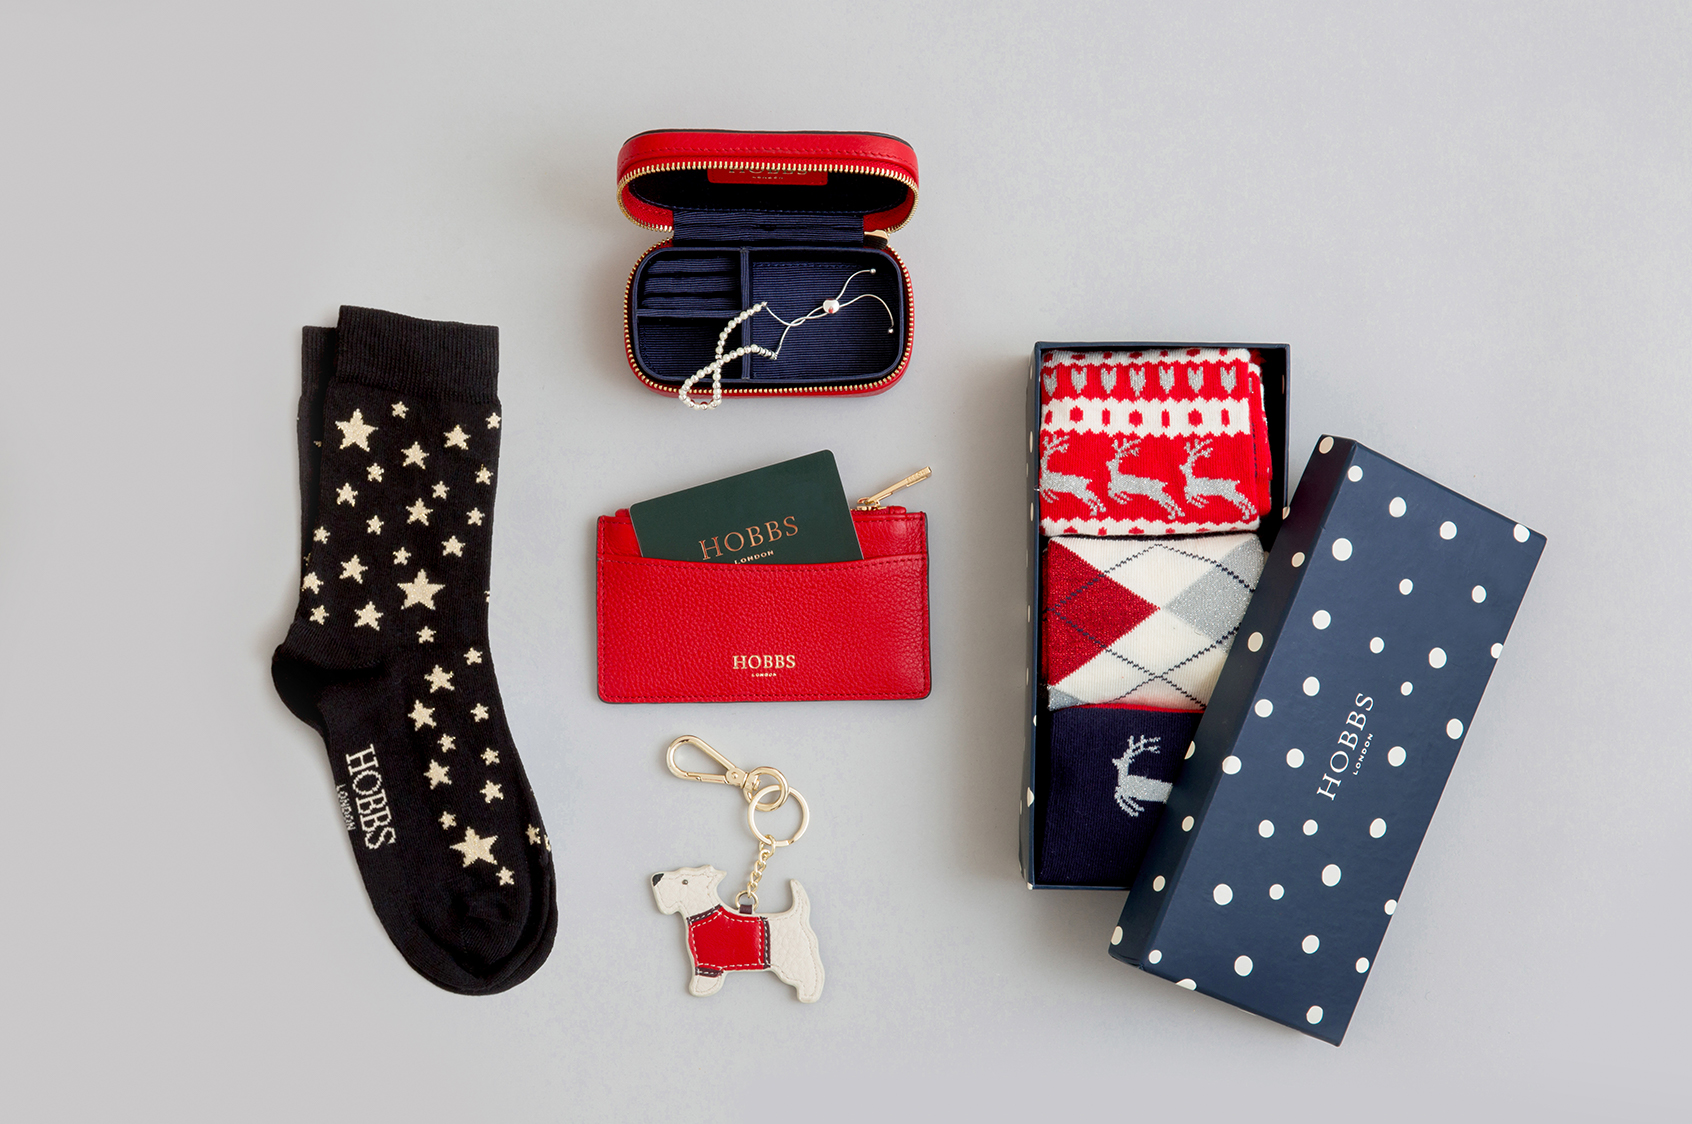 A selection of Christmas stocking fillers including a box of socks, keyring and leather cardholder.